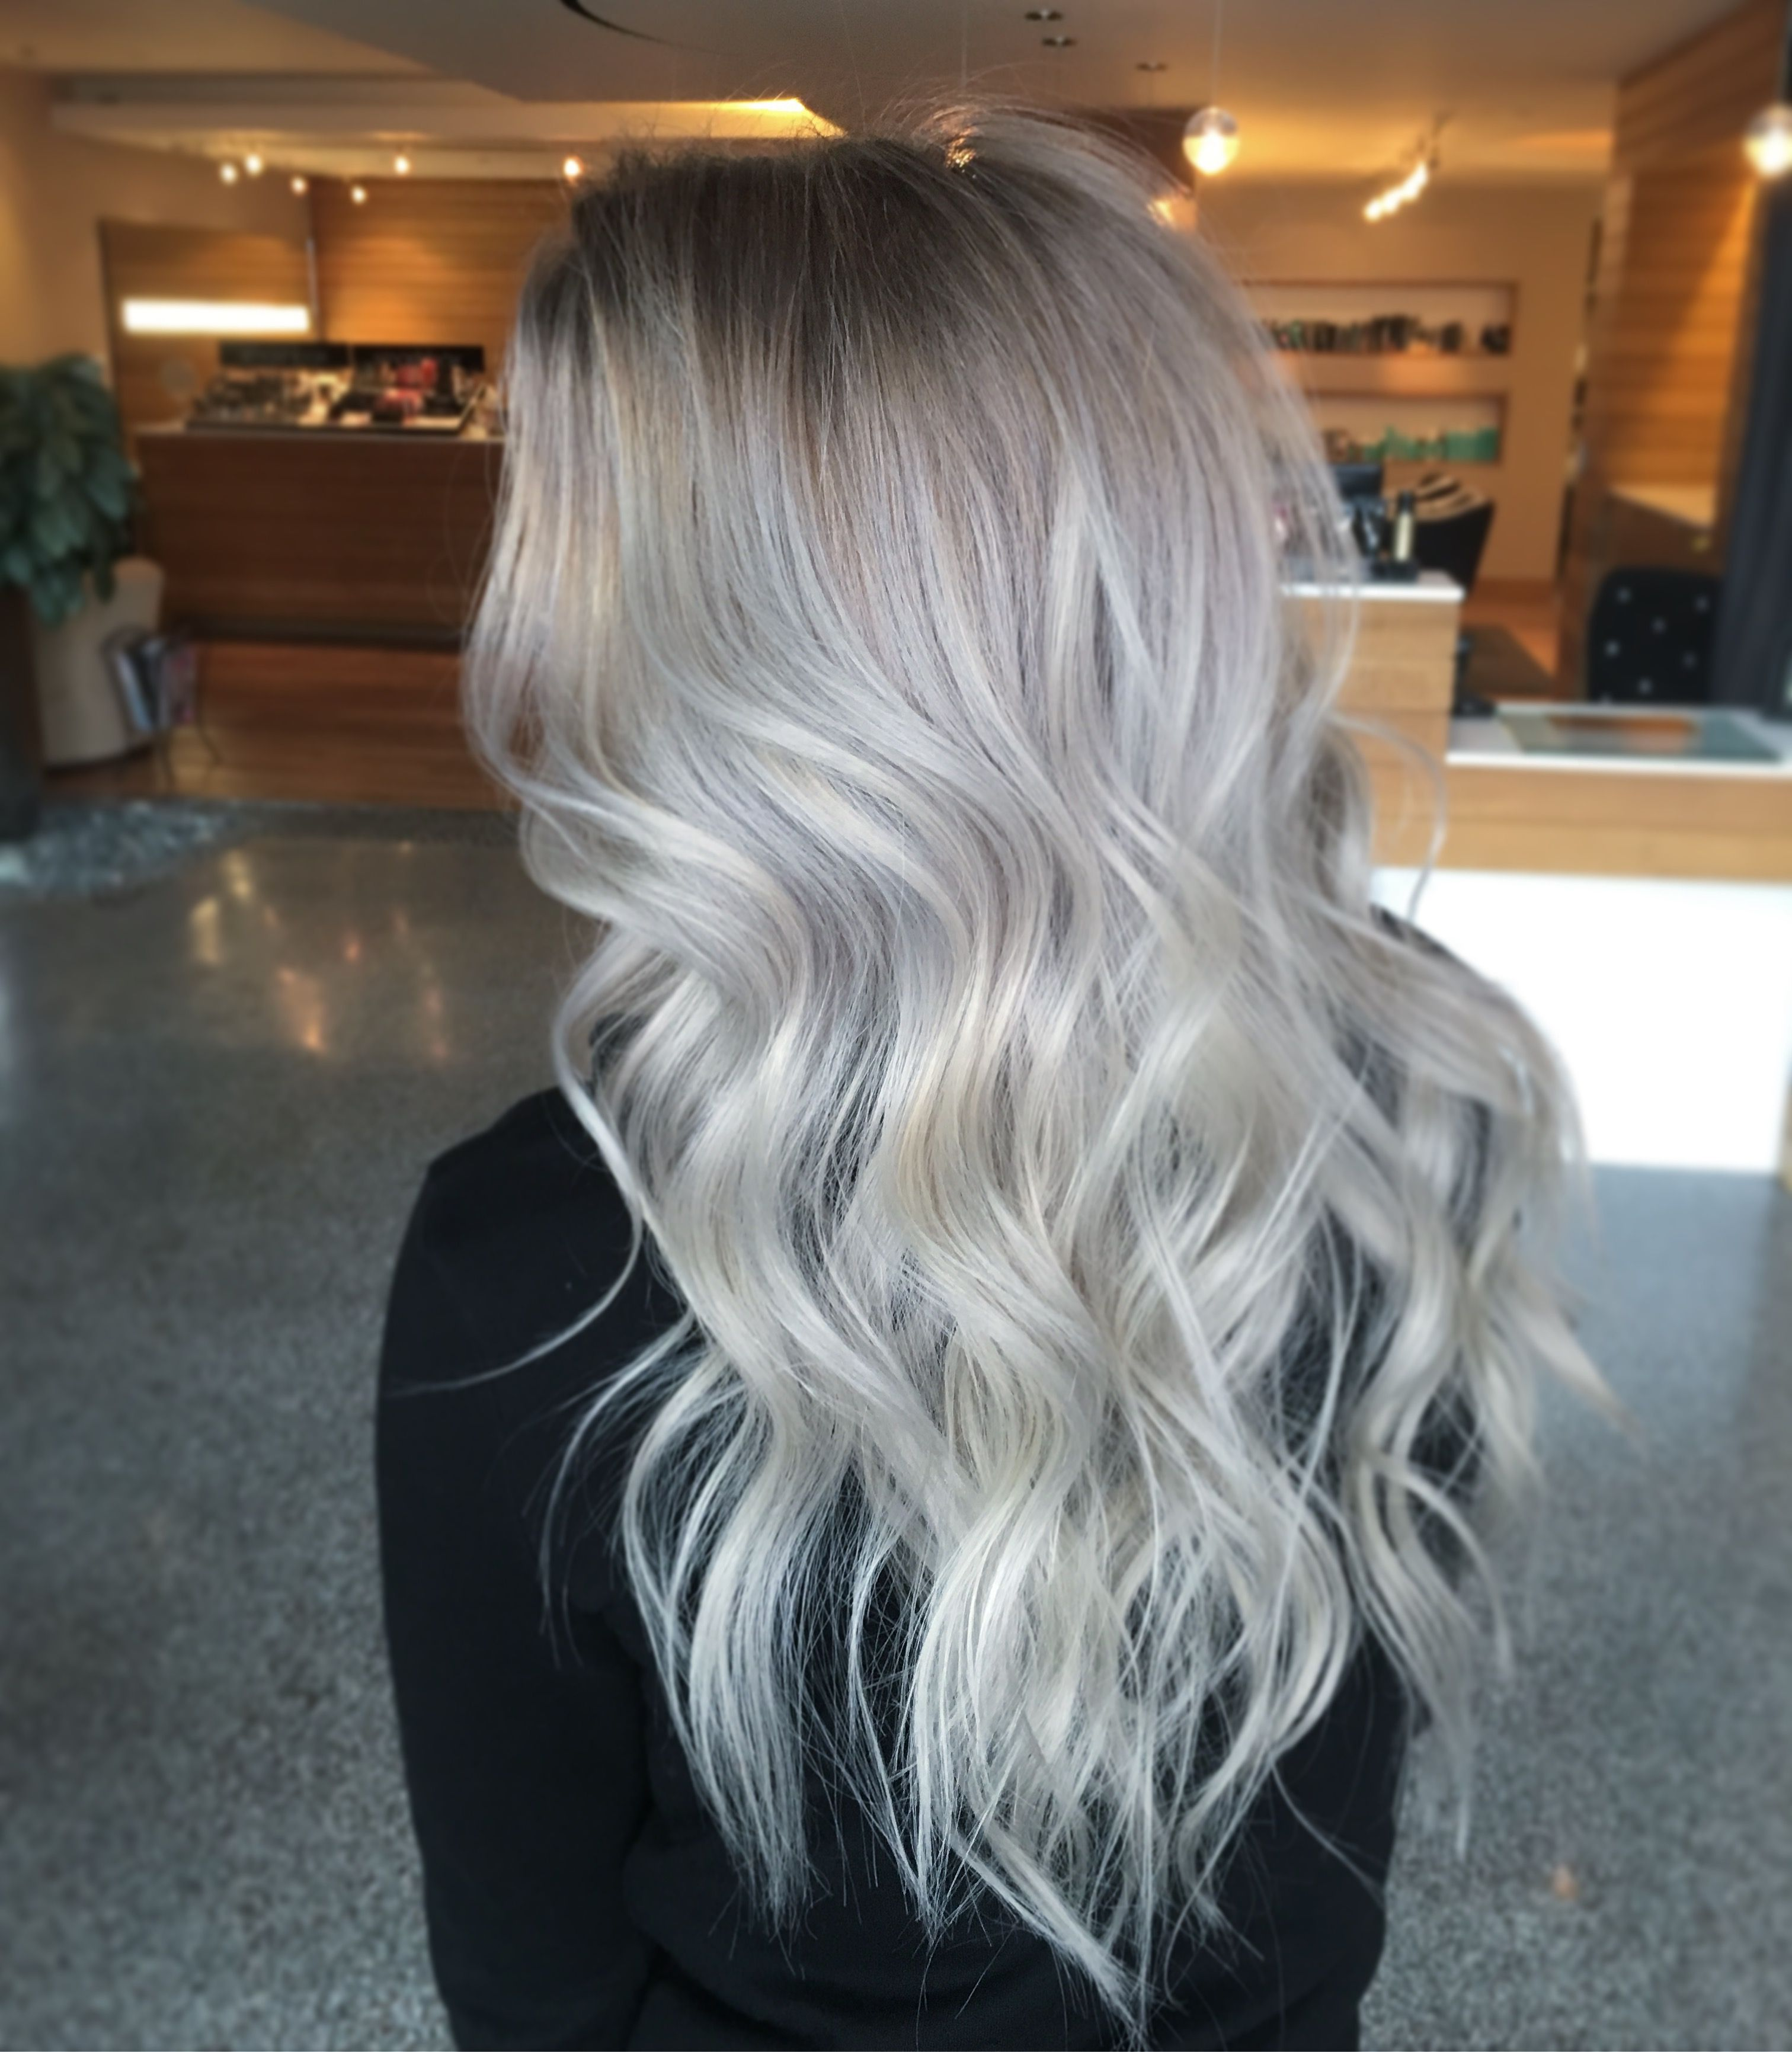 silver blonde hair hair pinterest silver blonde hair blondes and hair coloring. Black Bedroom Furniture Sets. Home Design Ideas